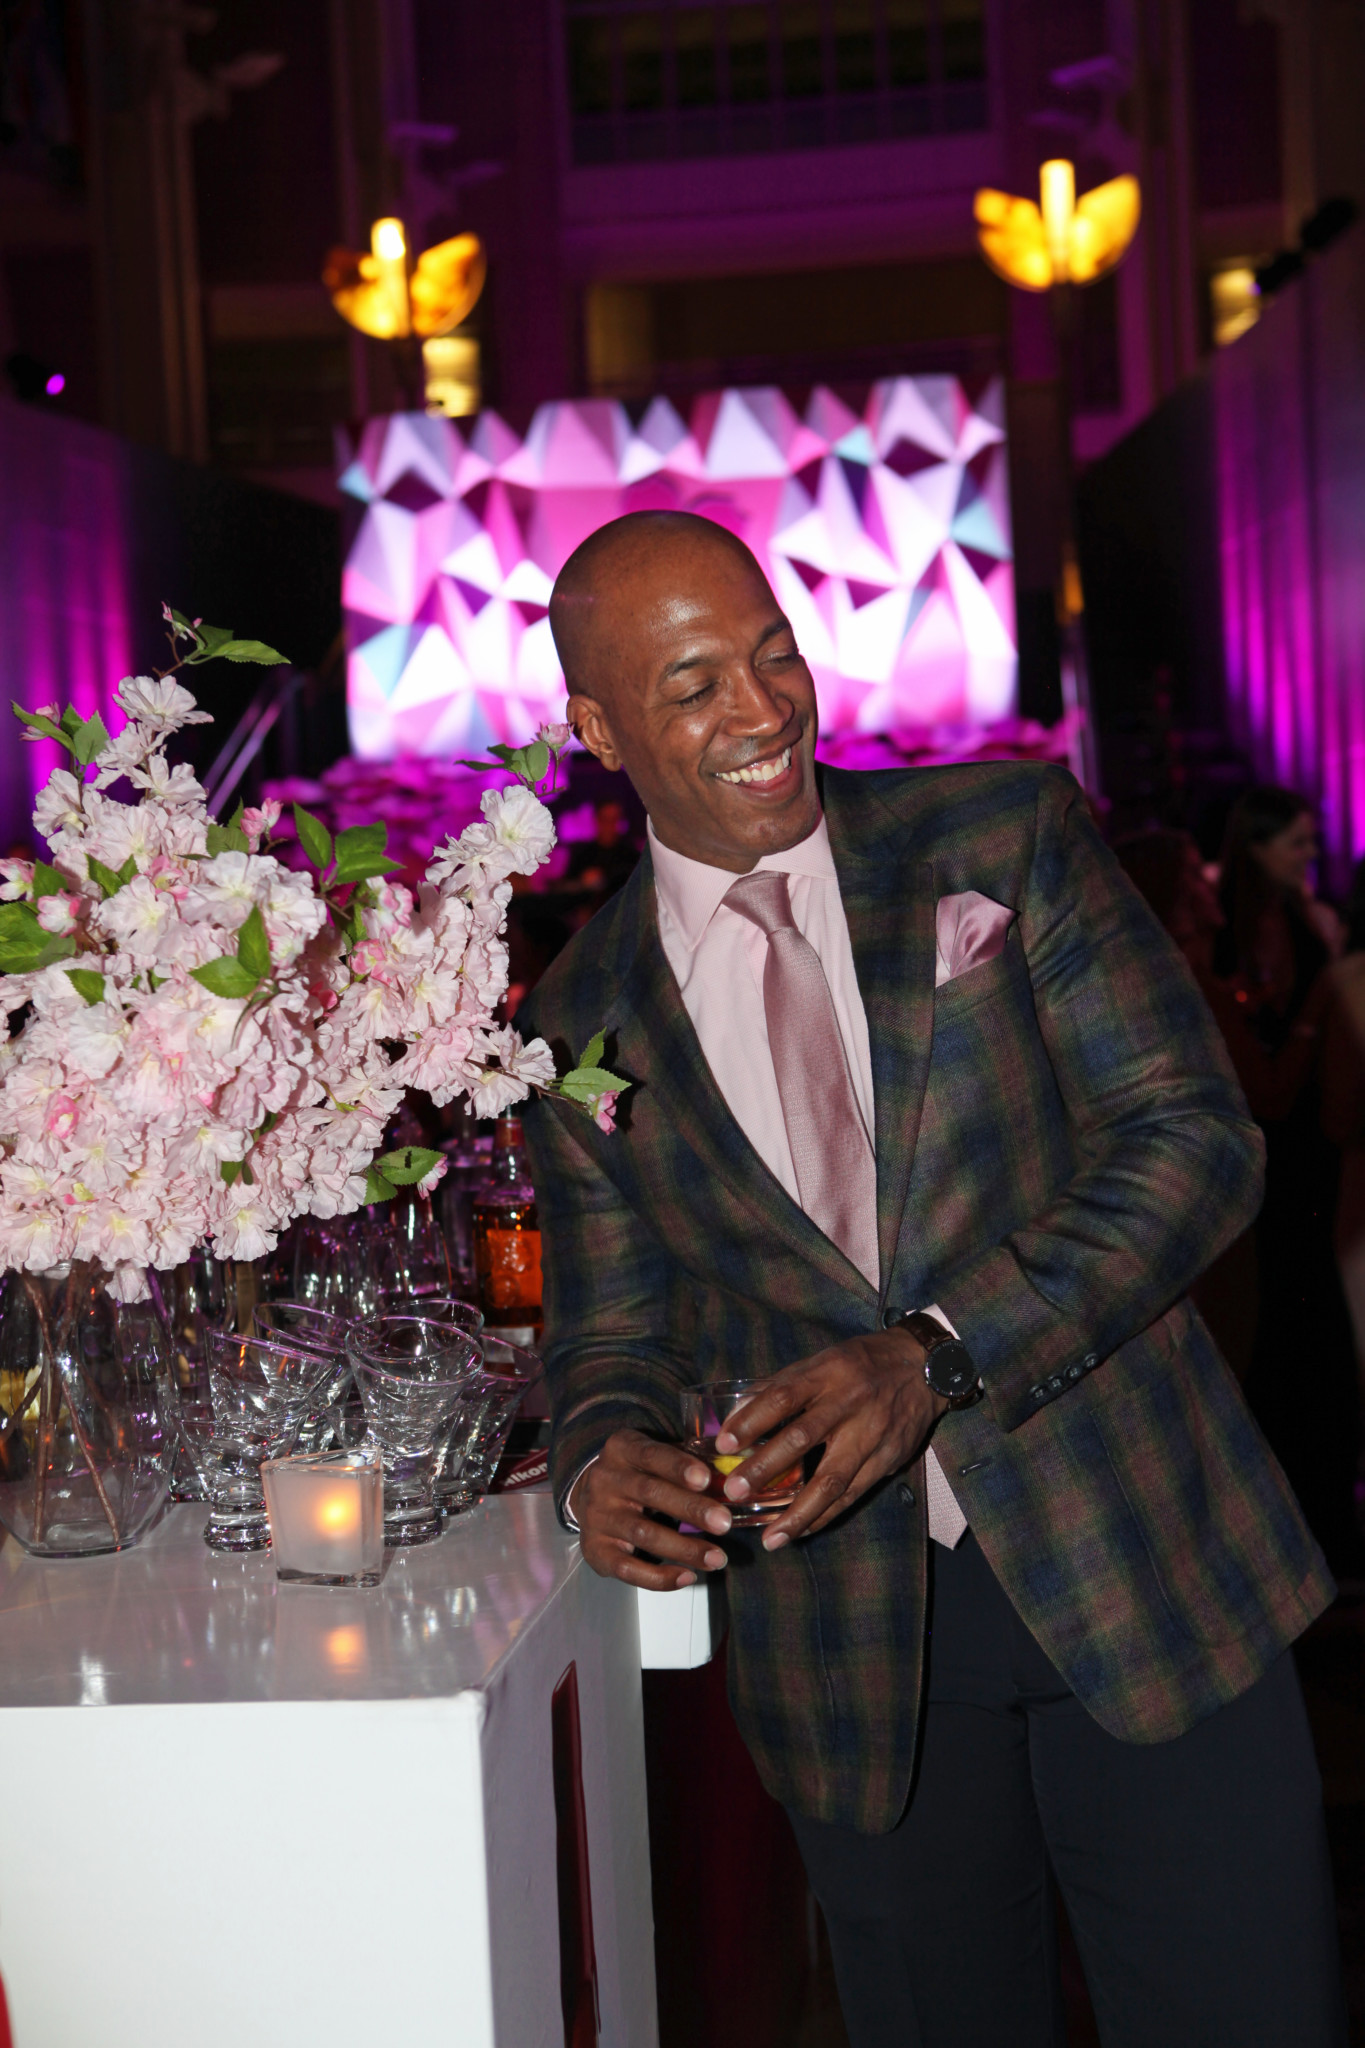 DCFashion Fool smiles at Cherry Blossom Pnk Tie Party